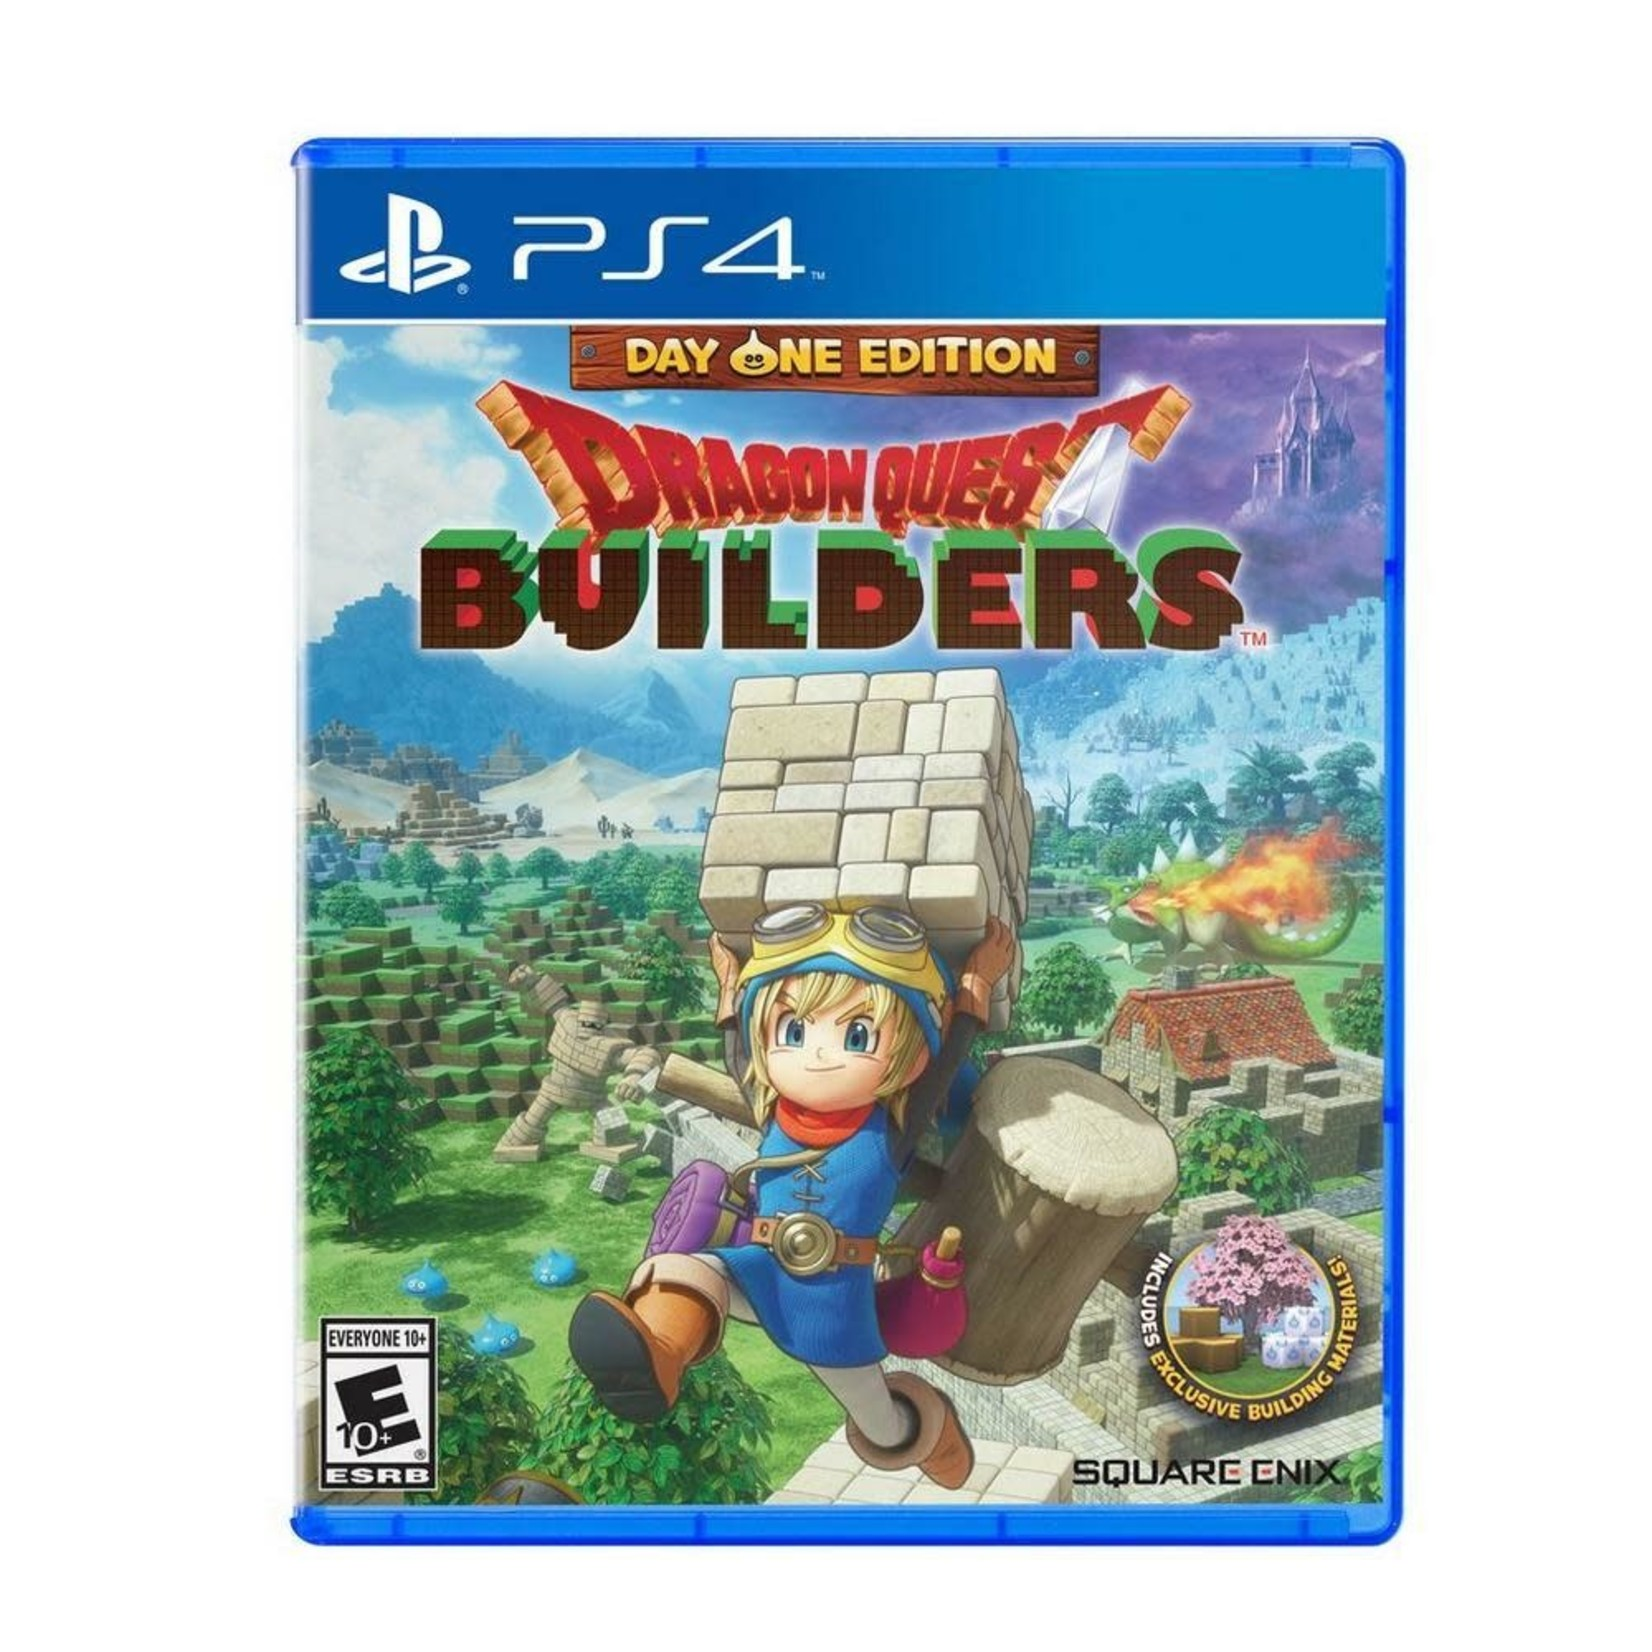 PS4-Dragon Quest Builders Day One Edition